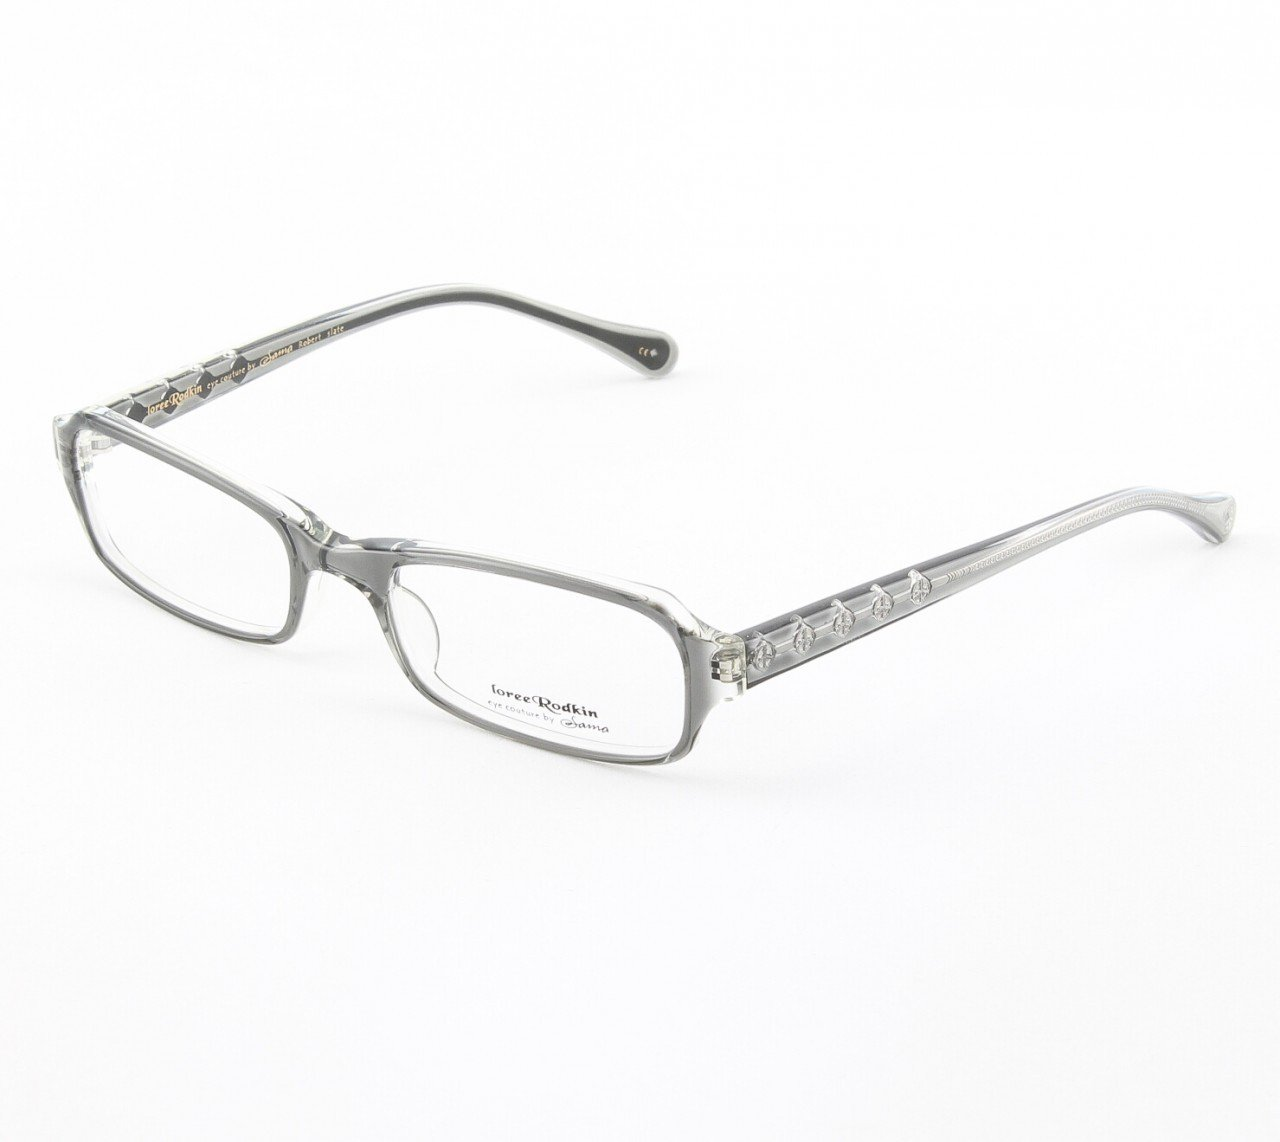 Loree Rodkin Robert Eyeglasses by Sama Col. Slate with Clear Lenses and Decorative Temple Core